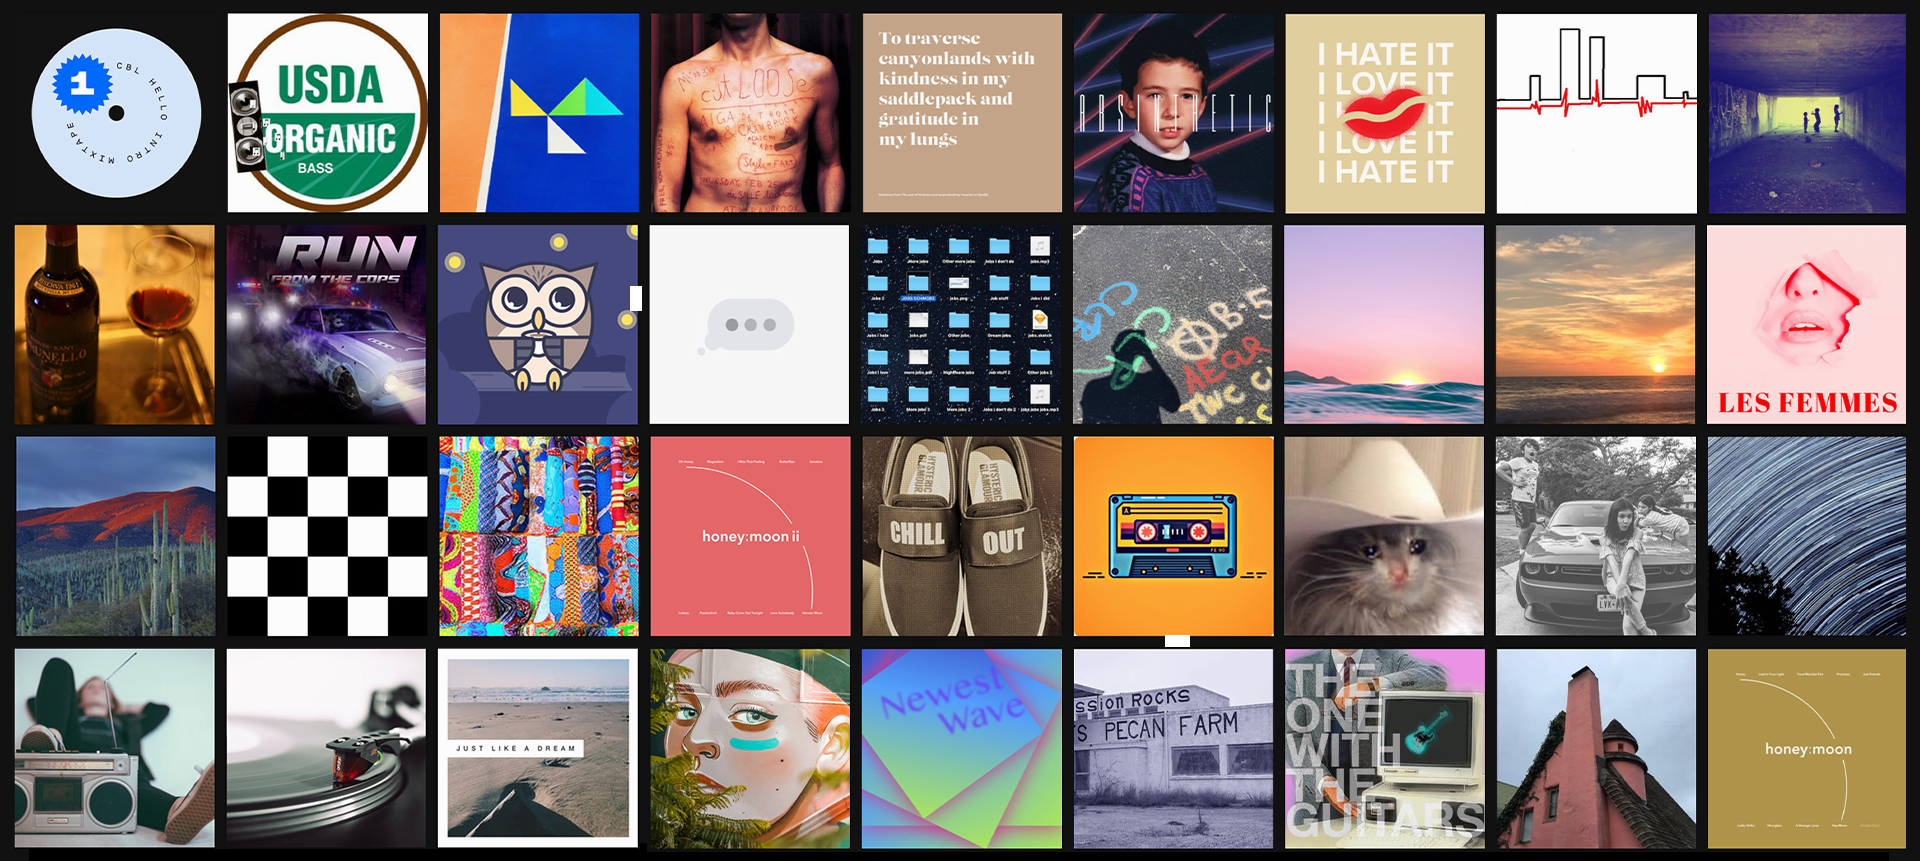 Large grid of thumbnail-size square album covers designed by employees at Indeed to go with their Spotify playlists